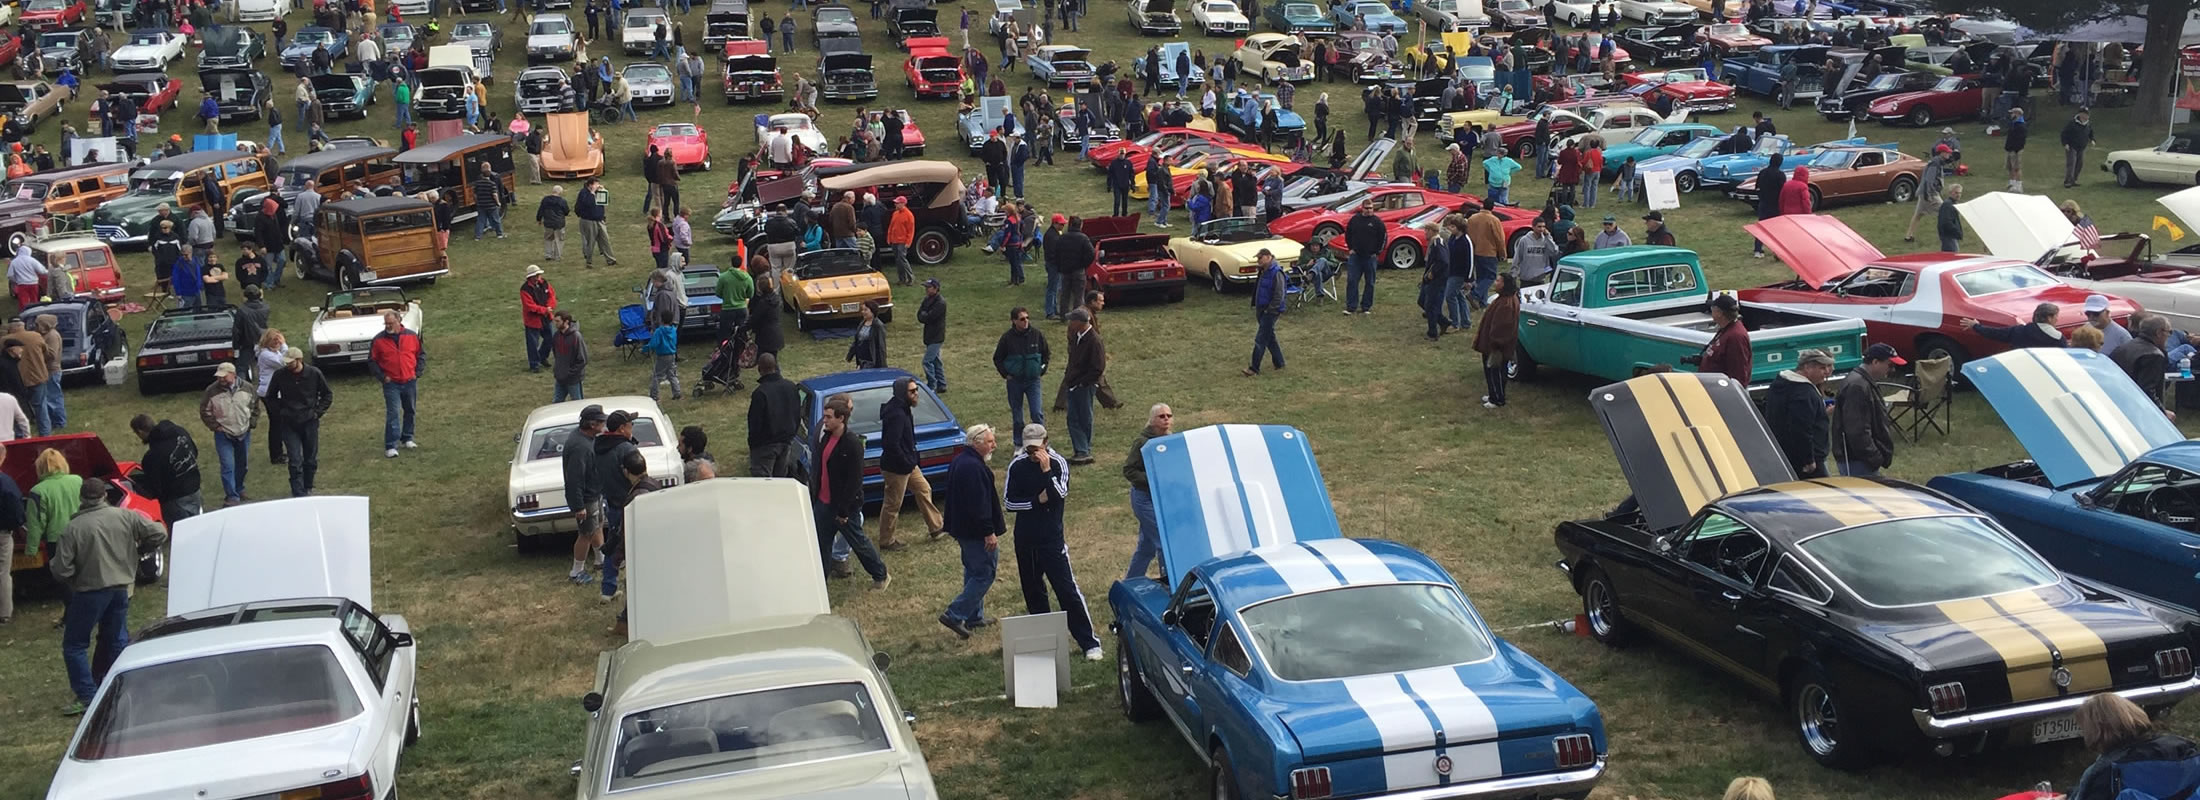 Cliffs Calendar Of Car Shows South Jersey Classic Car Show Events - Car shows in nj